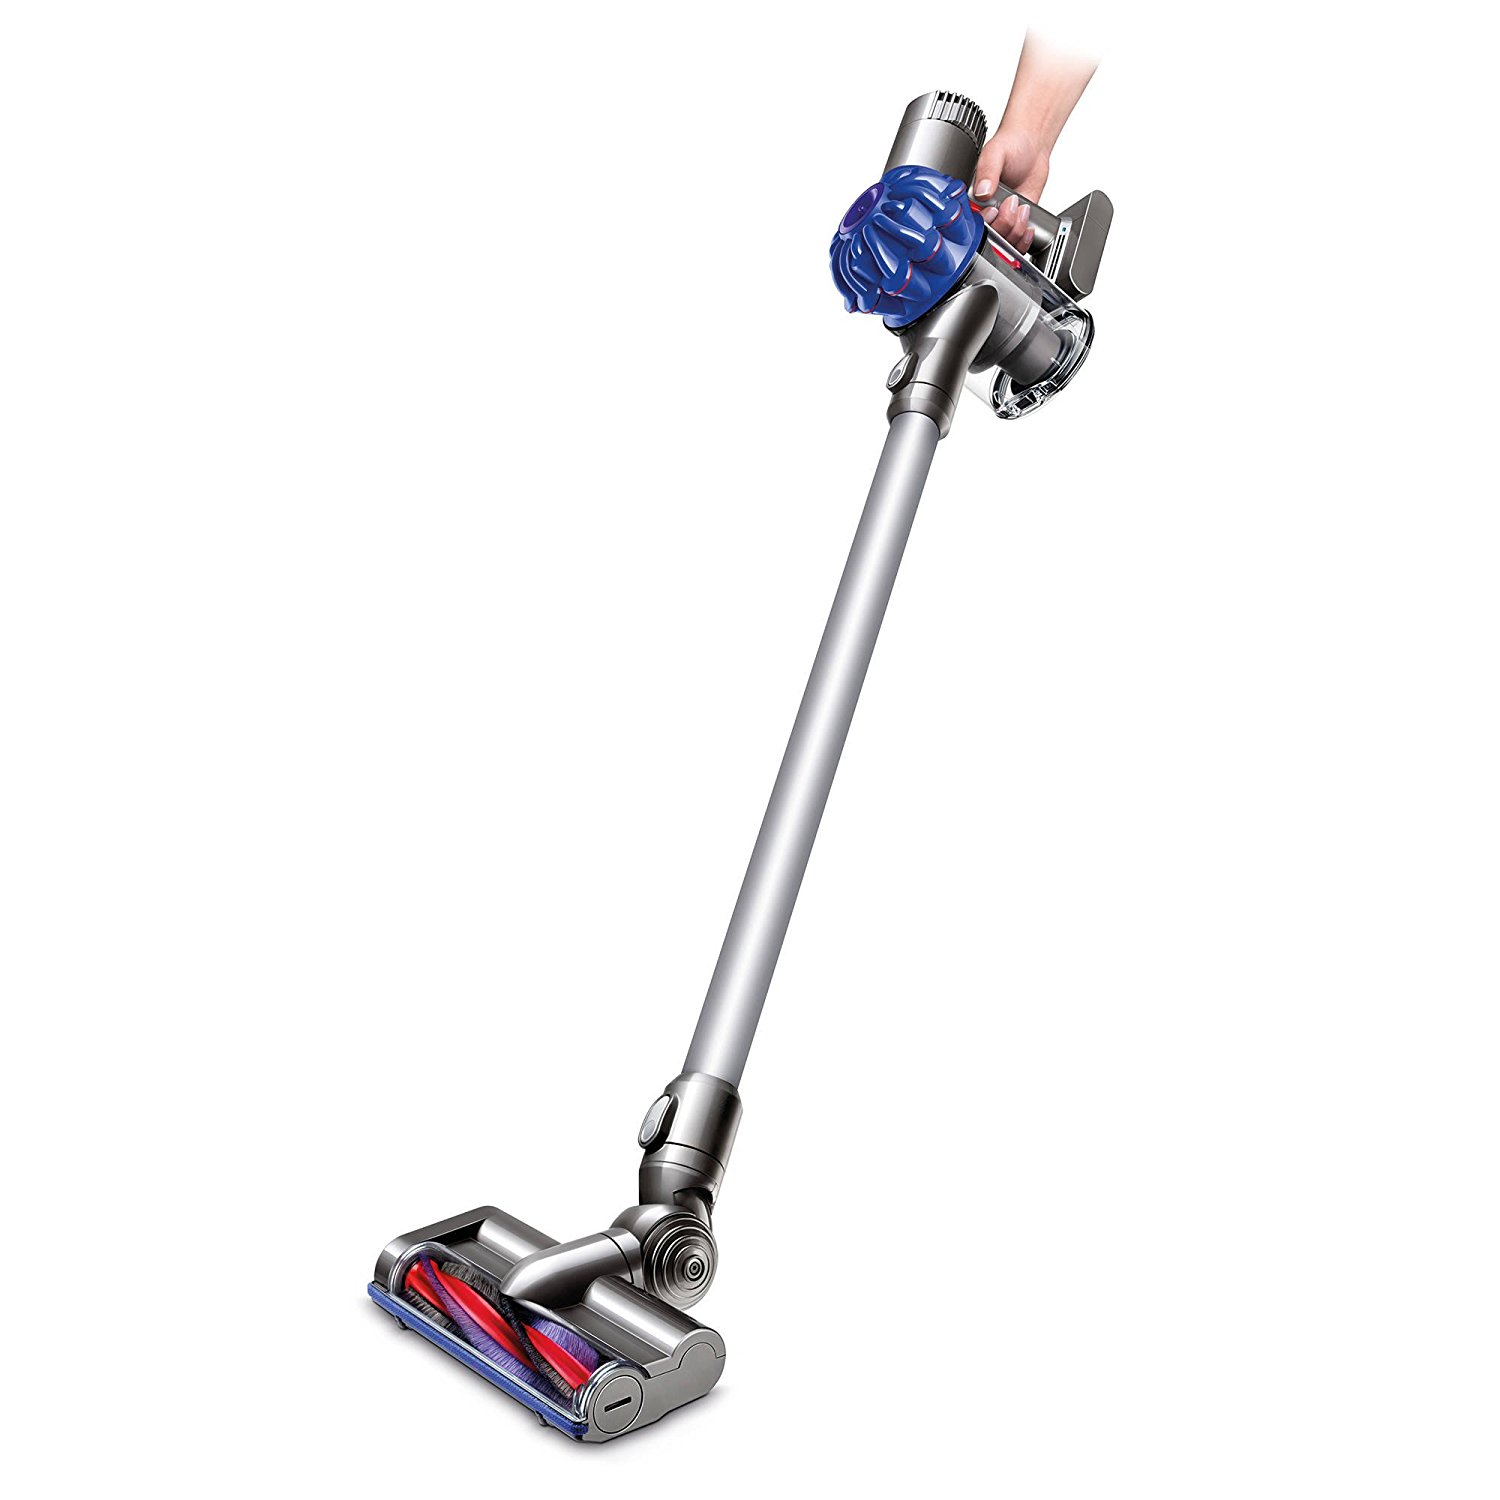 Save On Certified Refurb Dyson V6 Slim Vacuum Cleaner